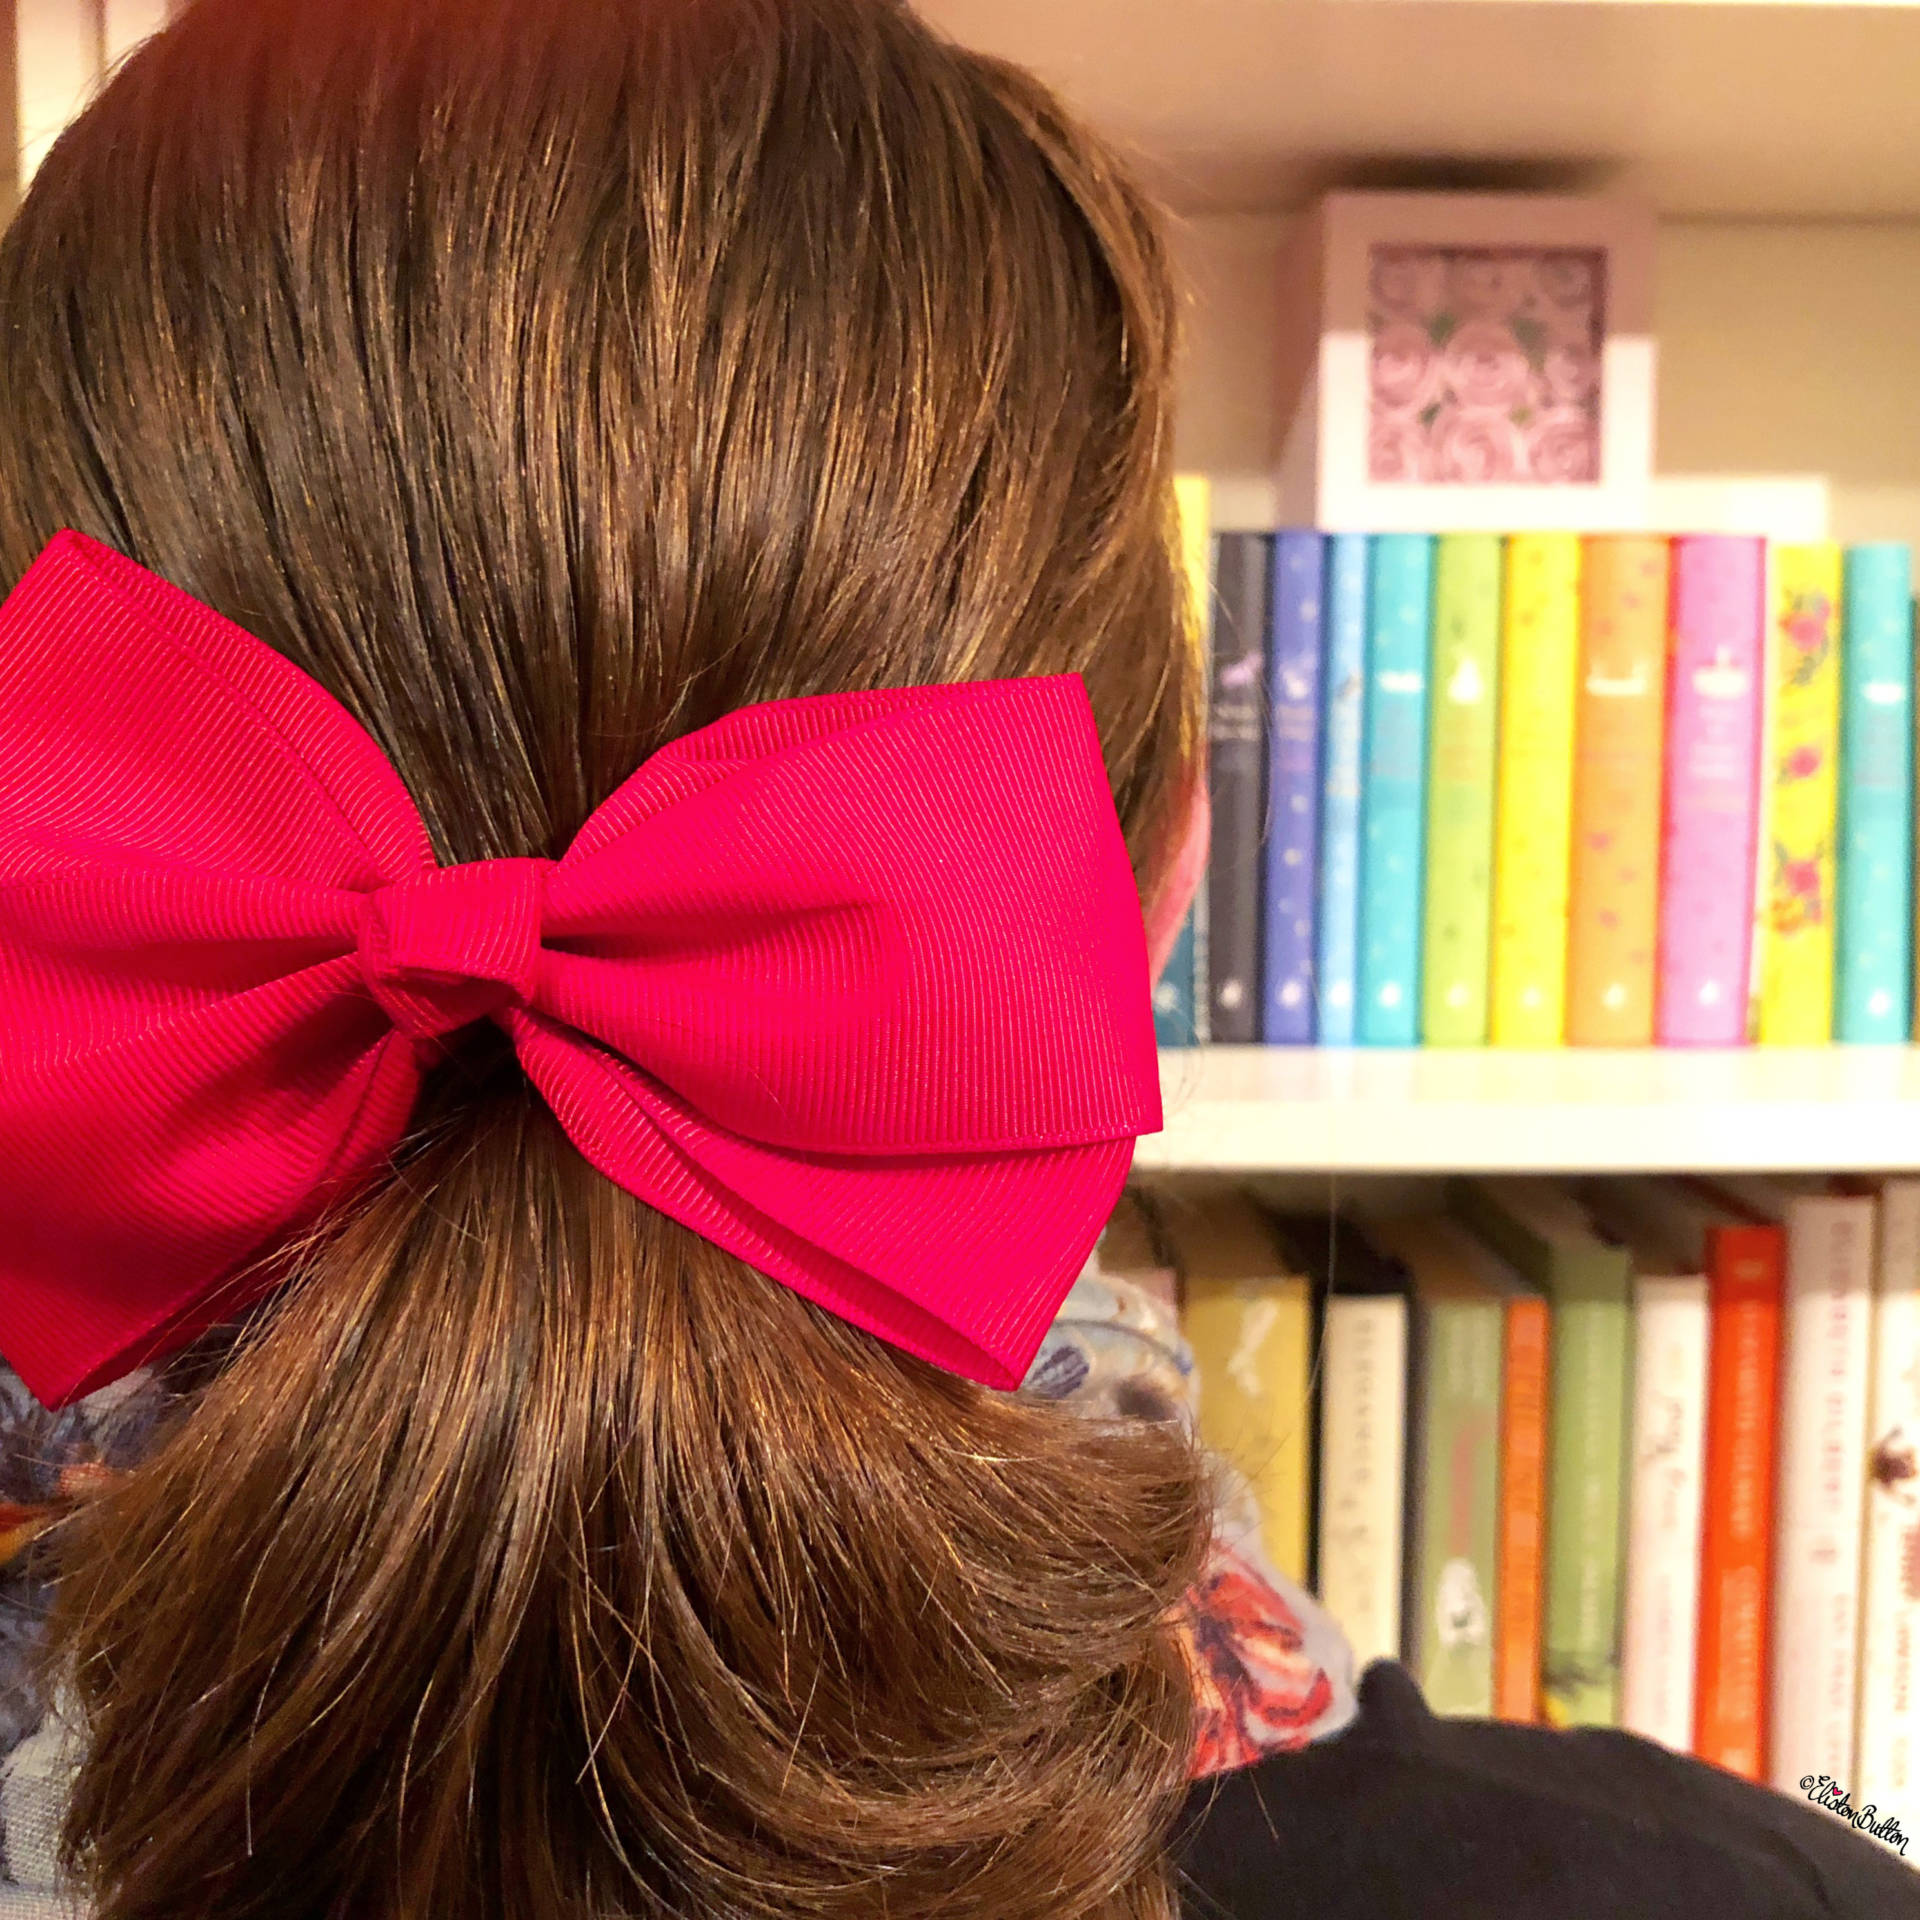 Red Giant Hair Bow and Rainbow Bookcase - For the Love of…Christmas at www.elistonbutton.com - Eliston Button - That Crafty Kid – Art, Design, Craft & Adventure.